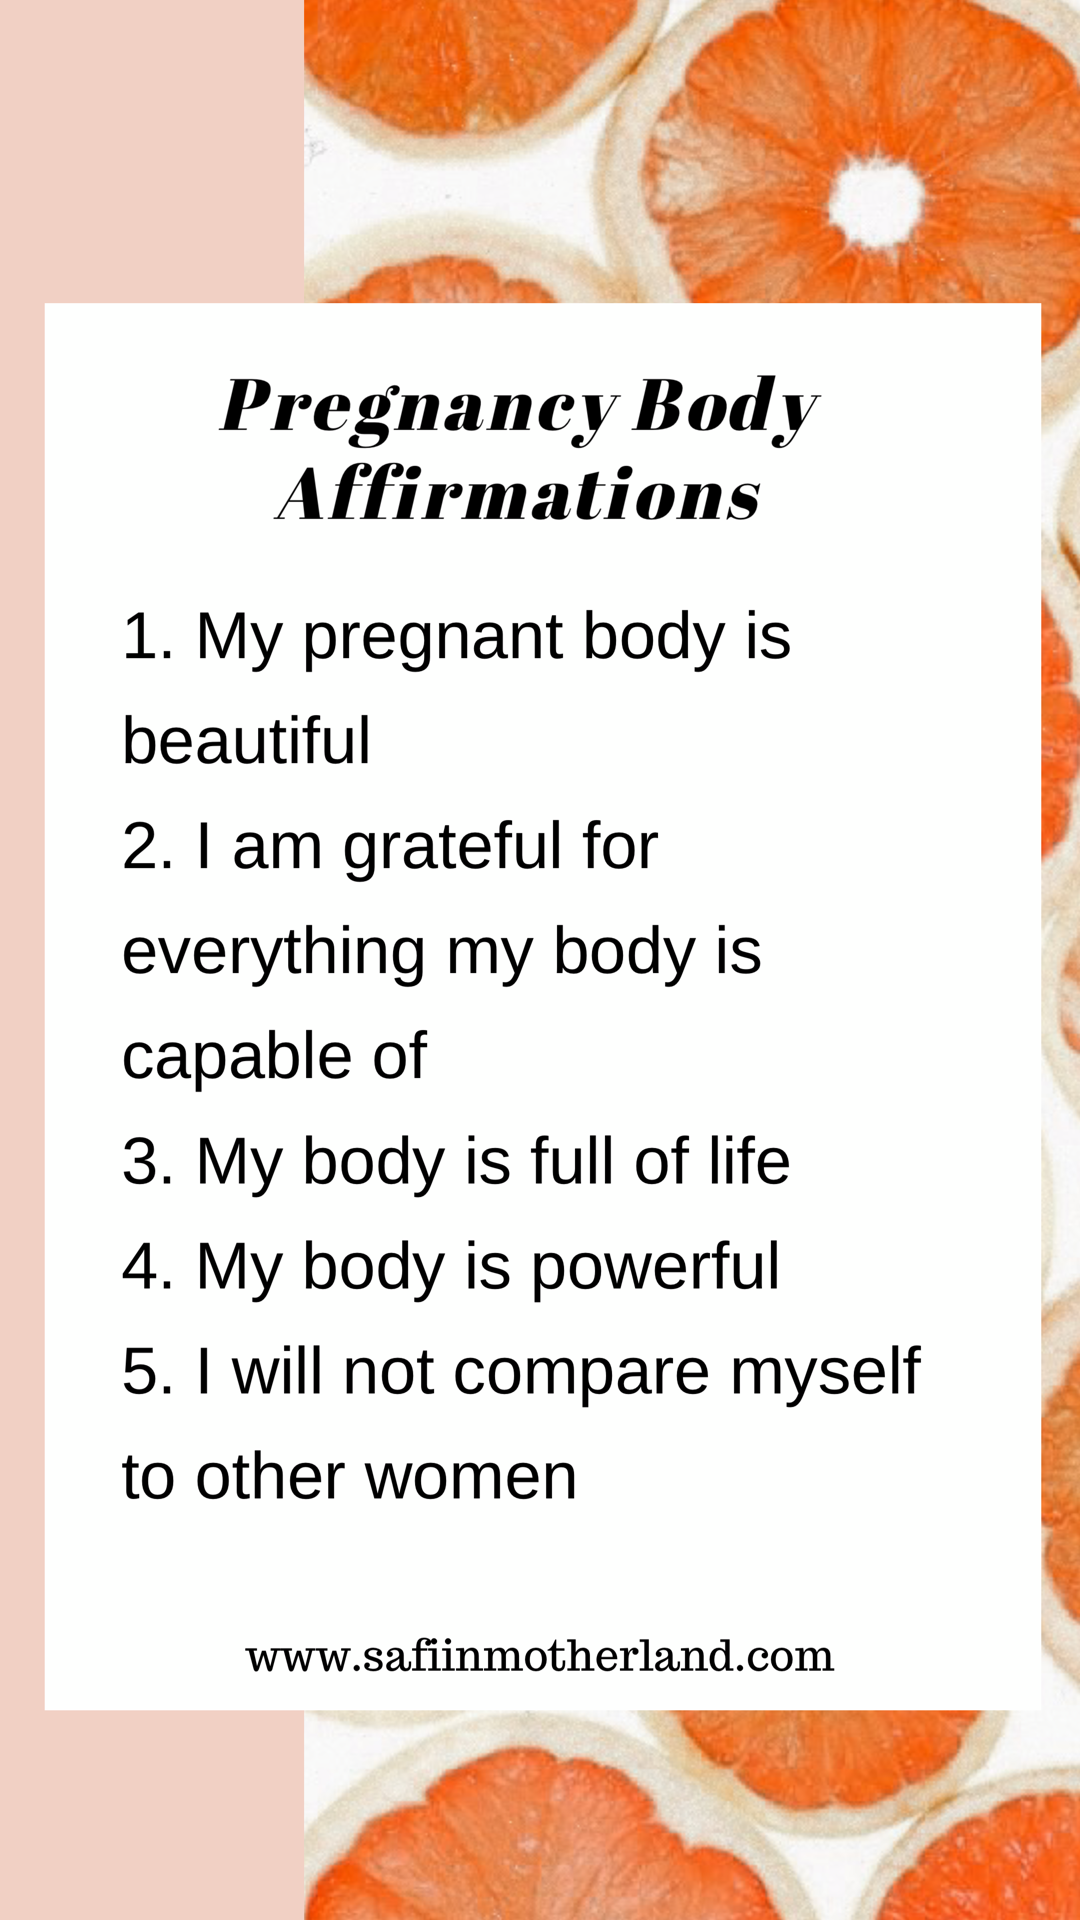 Body positive, pregnancy affirmations, daily affirmations, pregnancy insecurities